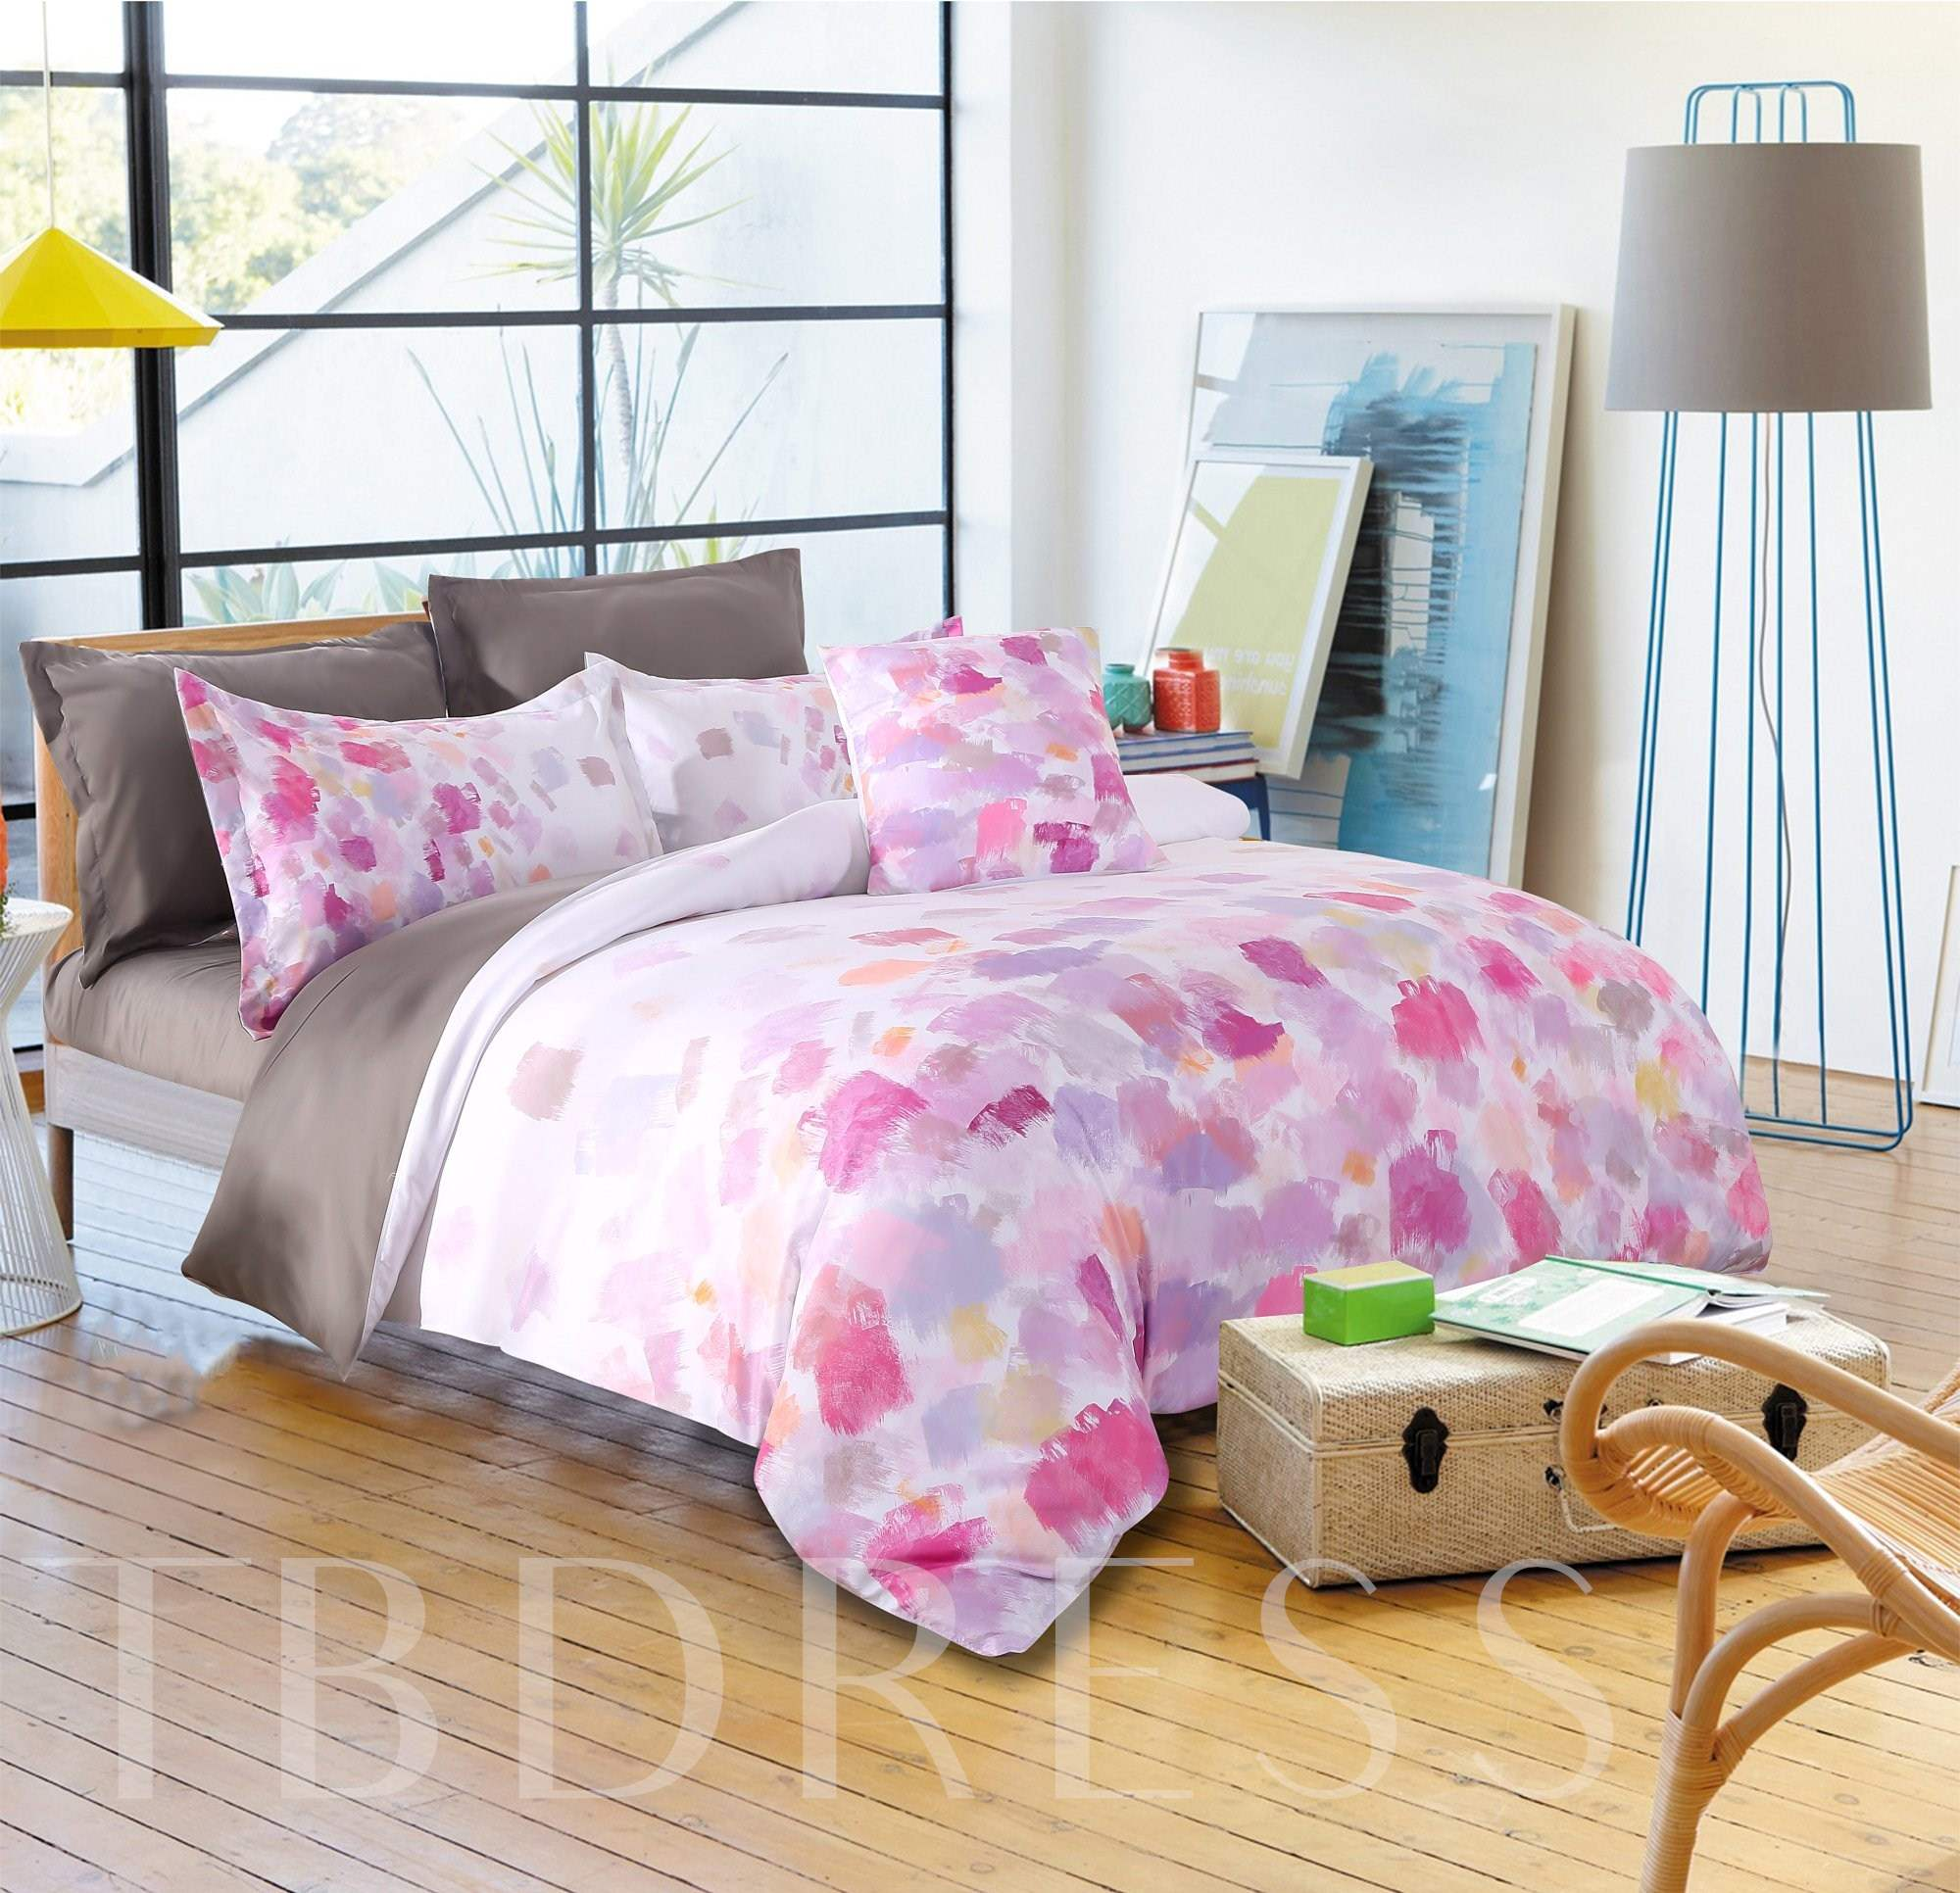 Abstract Scrawl Gouache Pink Pattern 4-Piece Polyester Bedding Sets/Duvet Cover